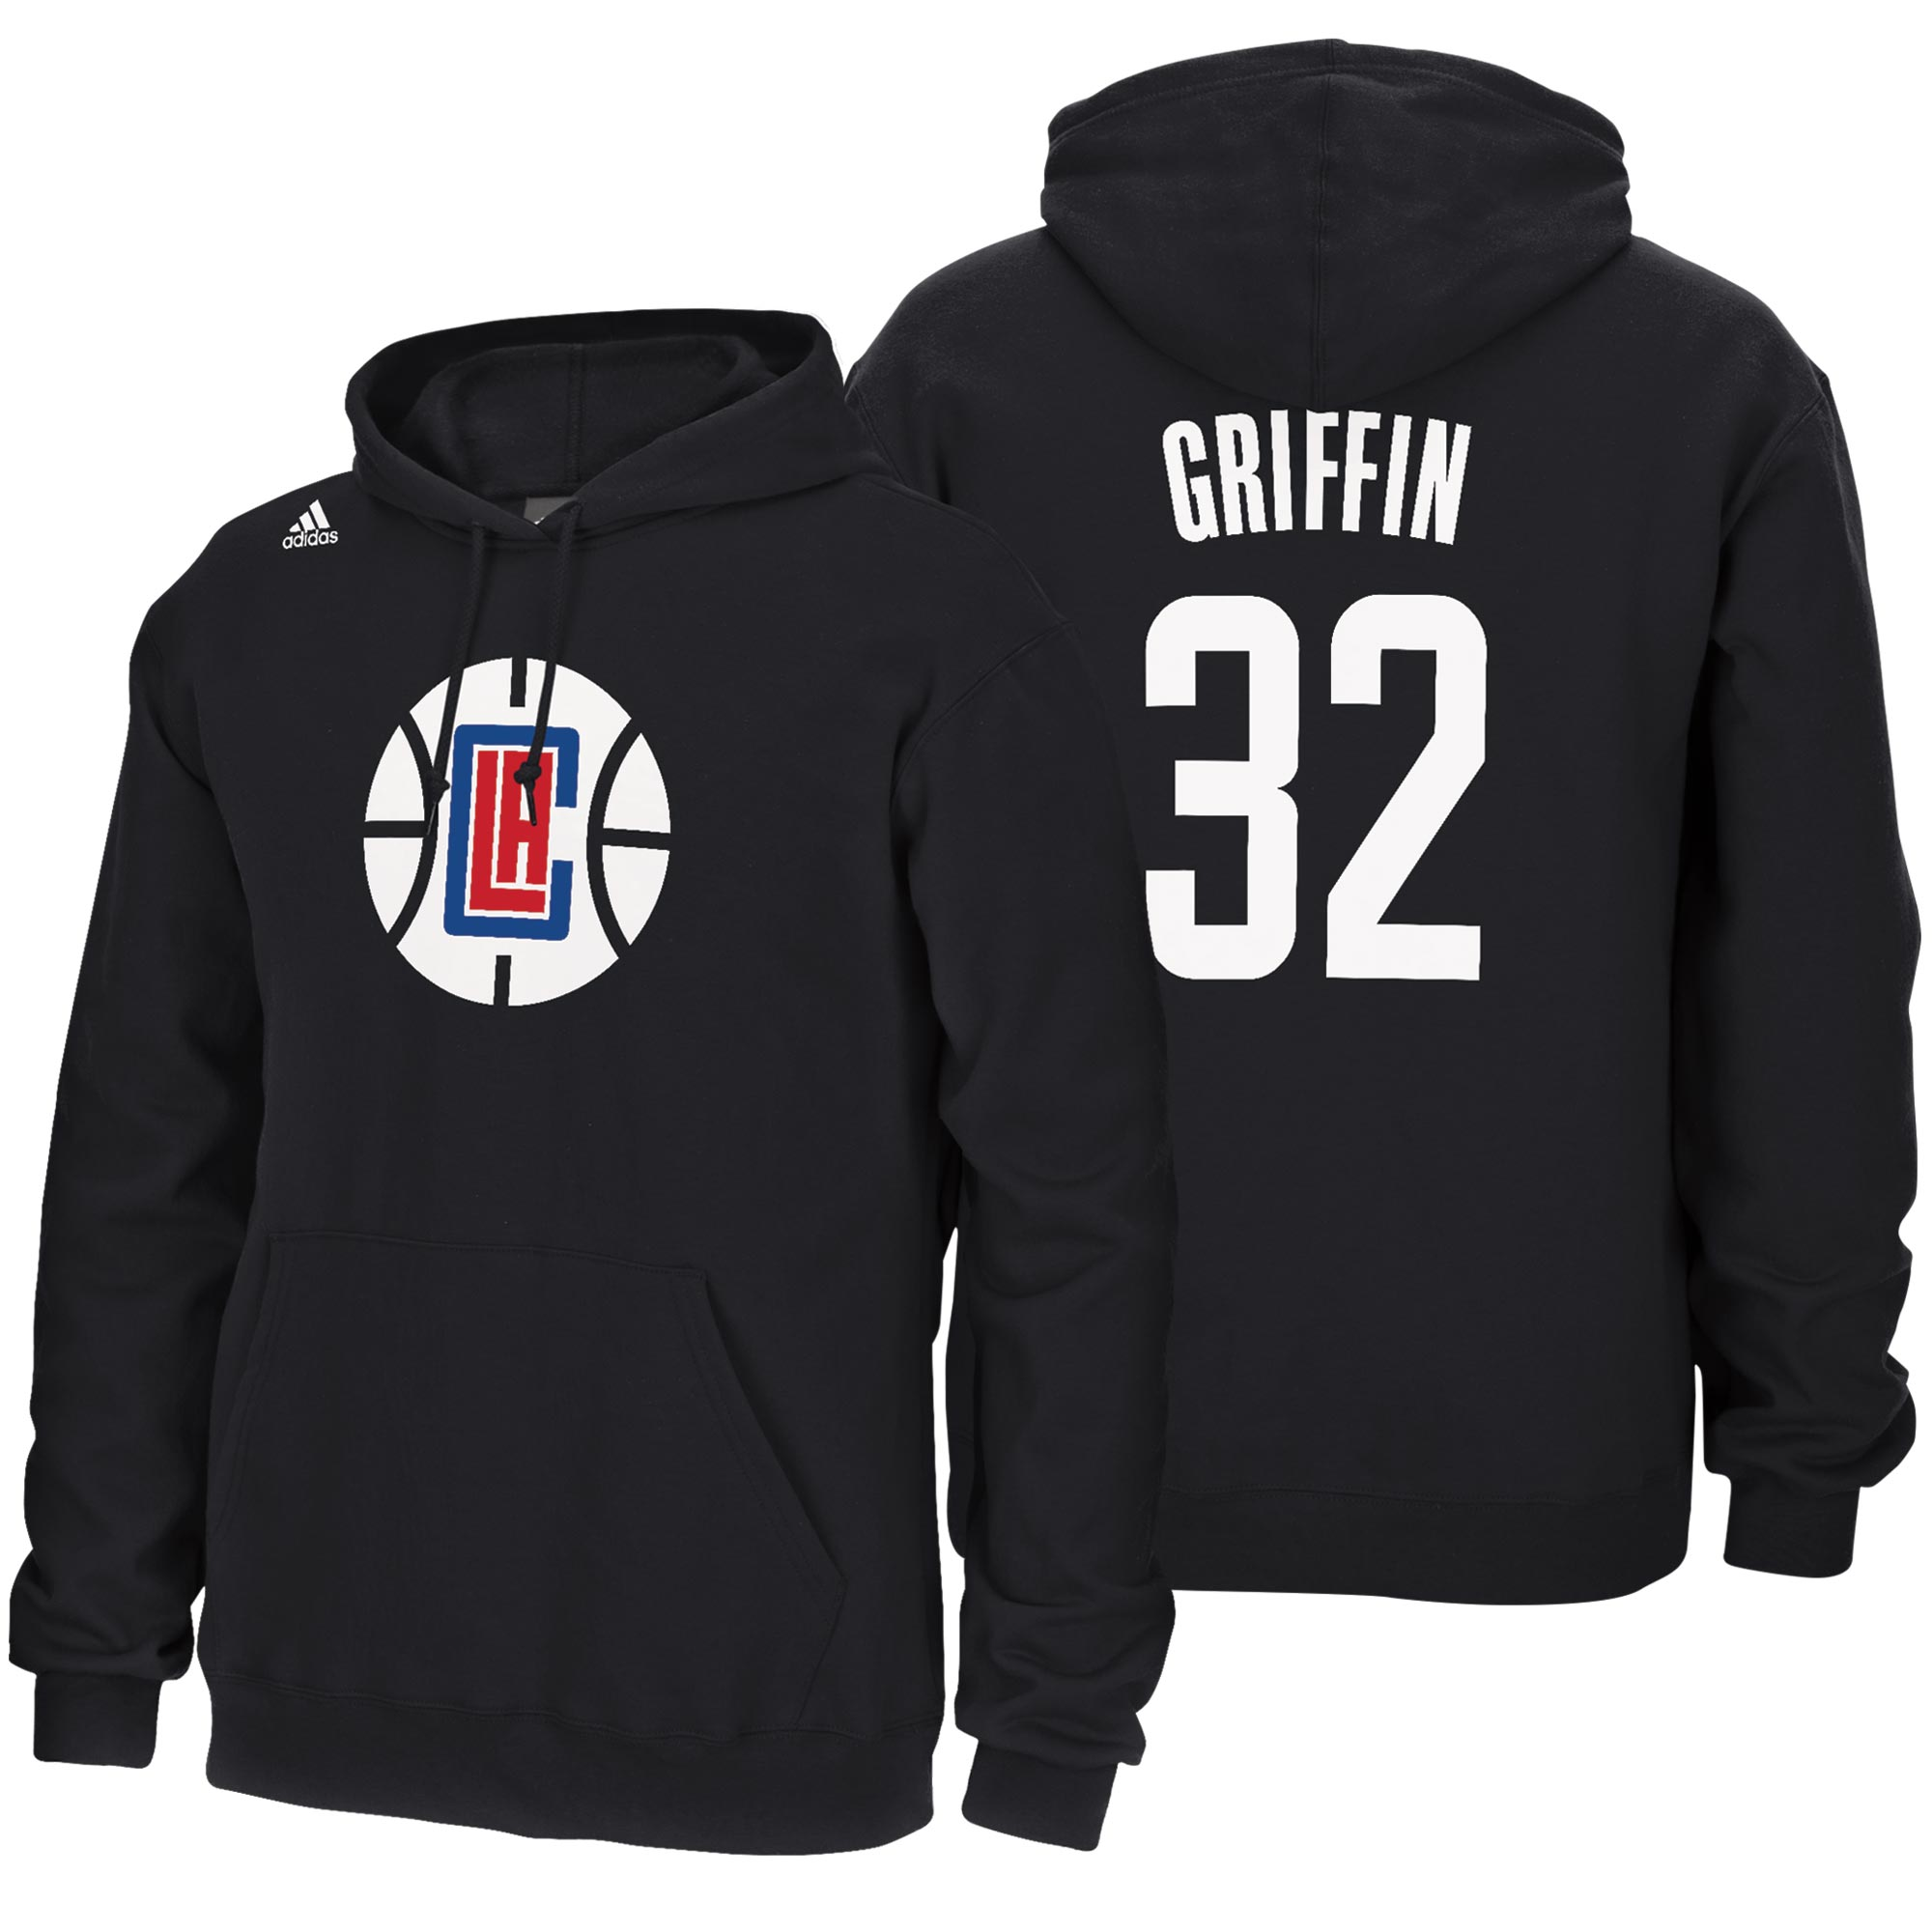 LA Clippers adidas Name & Number Hoodie - Blake Griffin